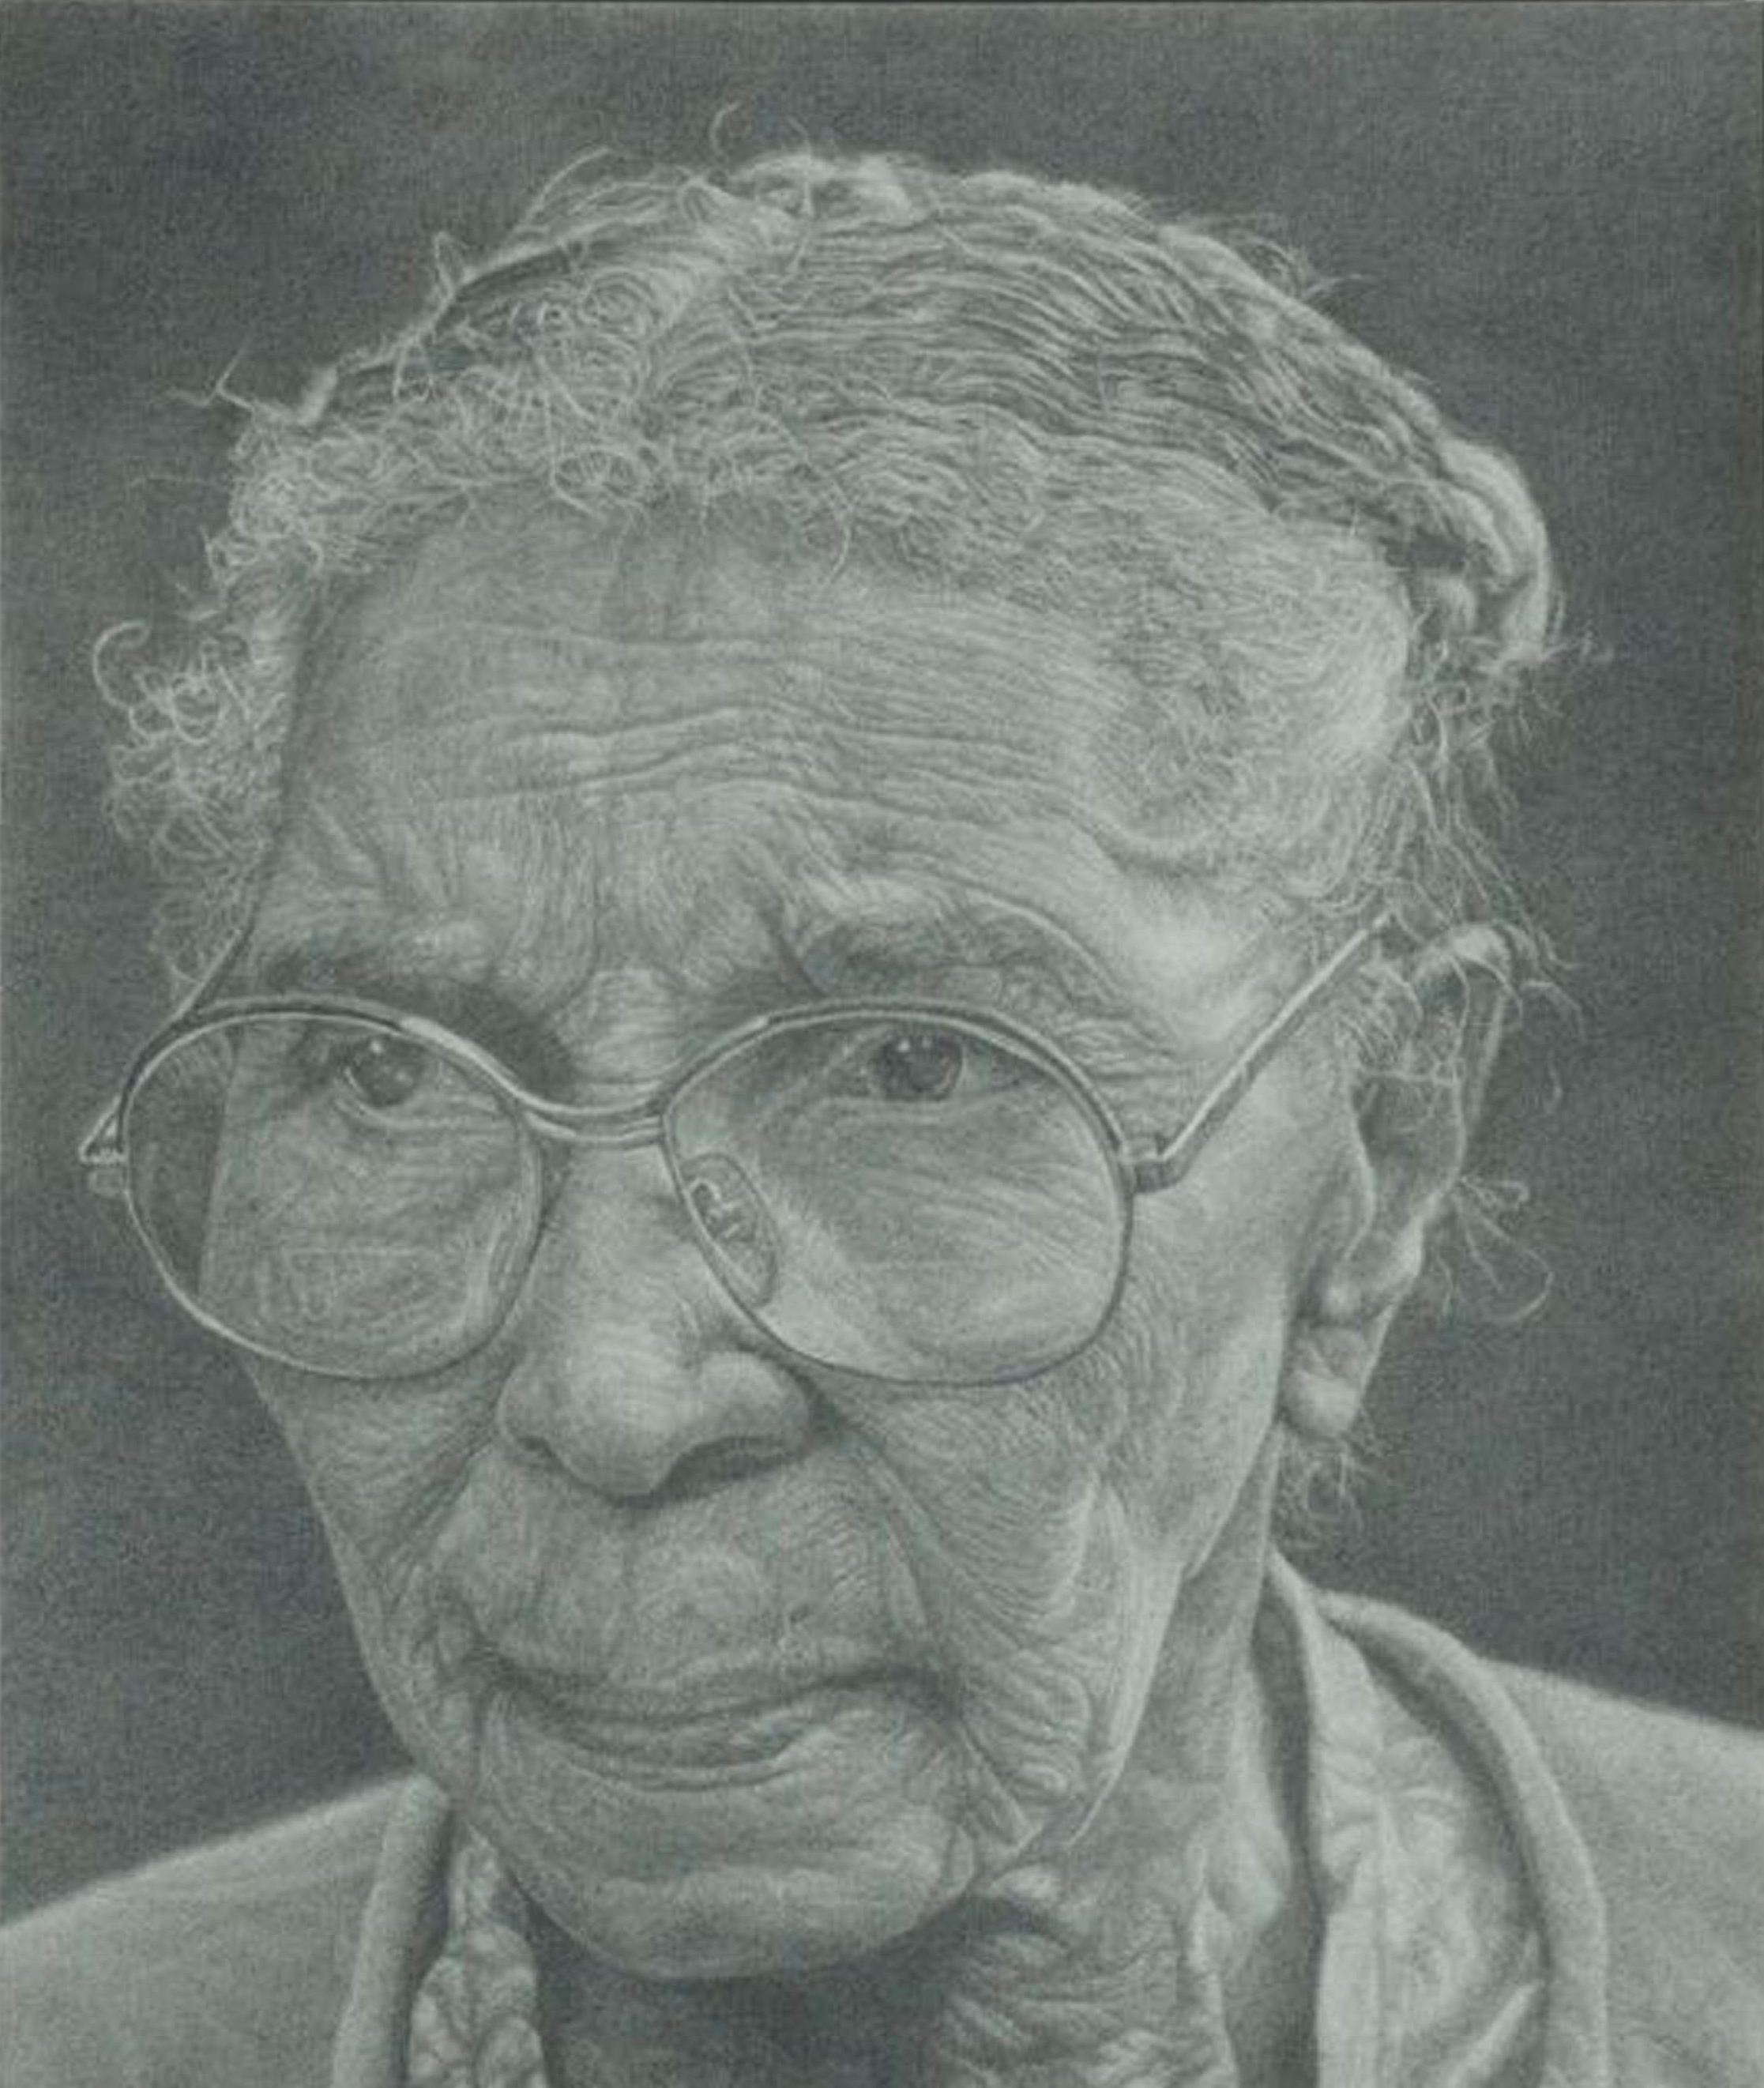 """Gussy Morgan""  2008 Pencil on wove paper  15 ¾ x 13 ¼ inches  © Richard Wyatt Jr."